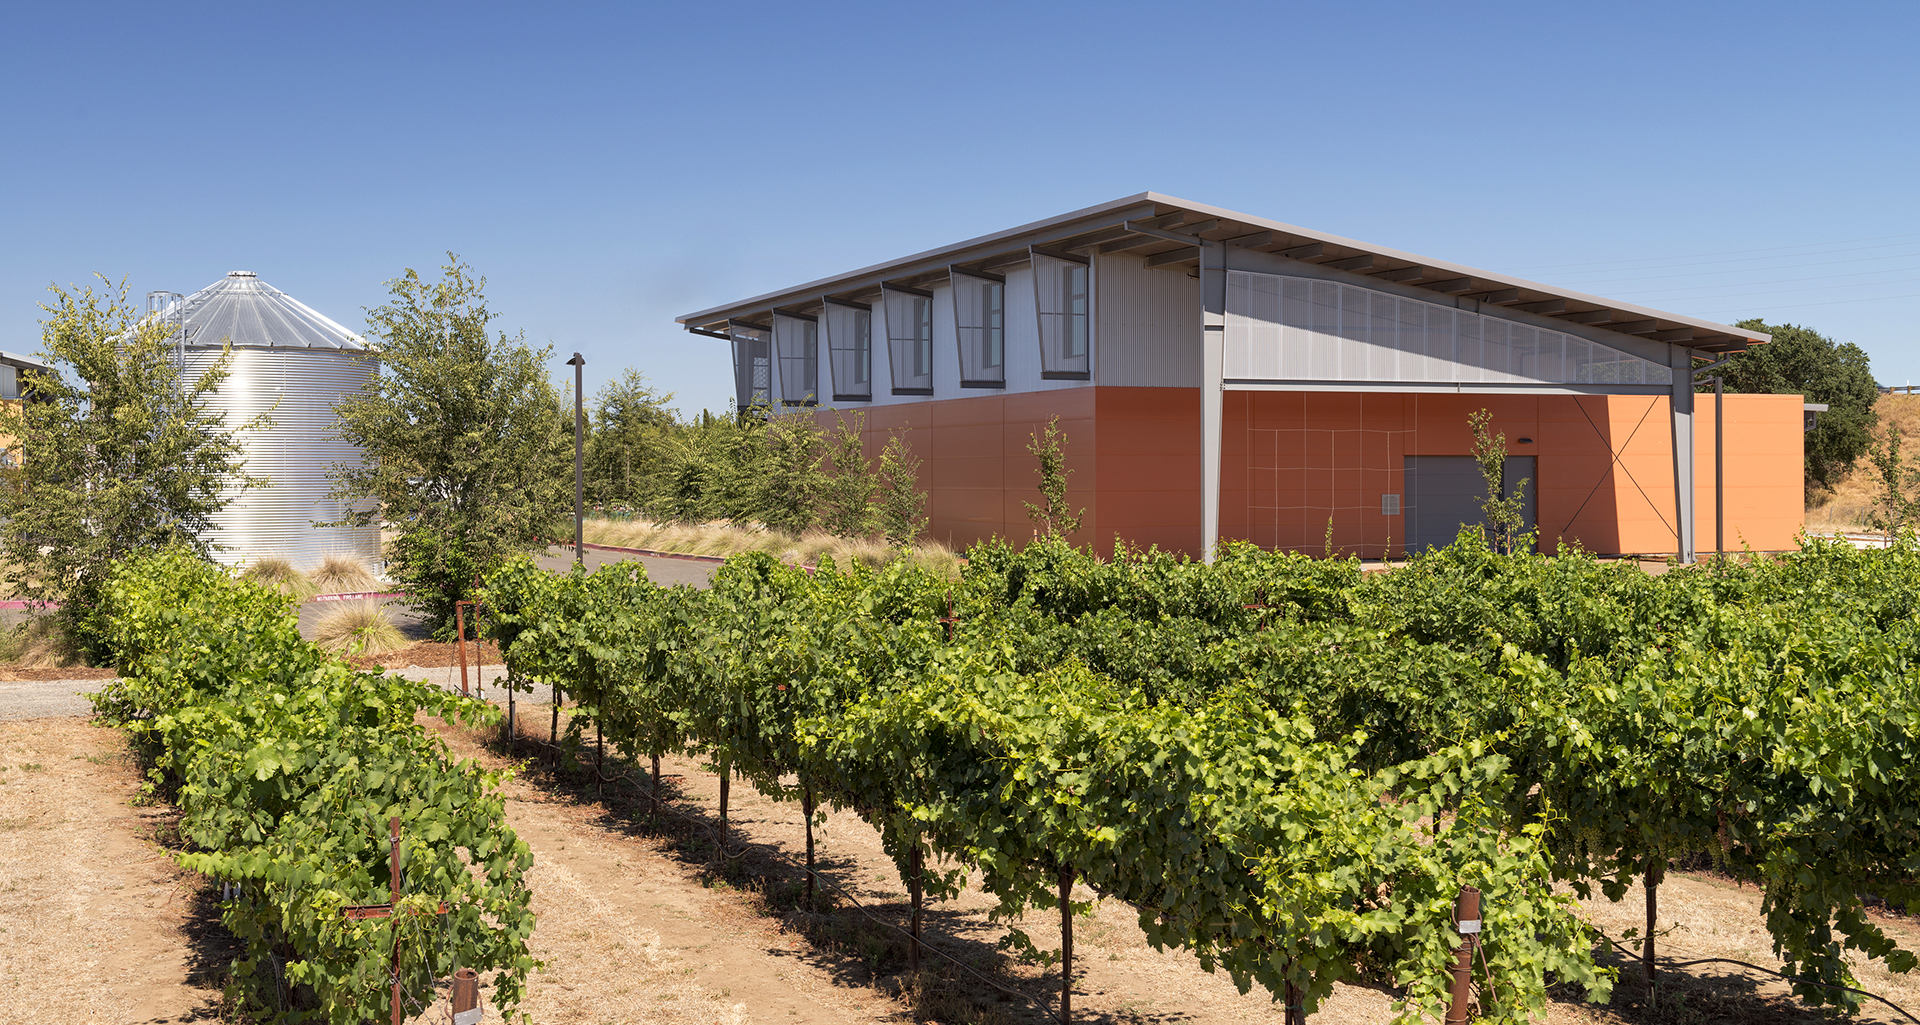 Jess S. Jackson Sustainable Winery Building | Photos by Jasper Sanidad